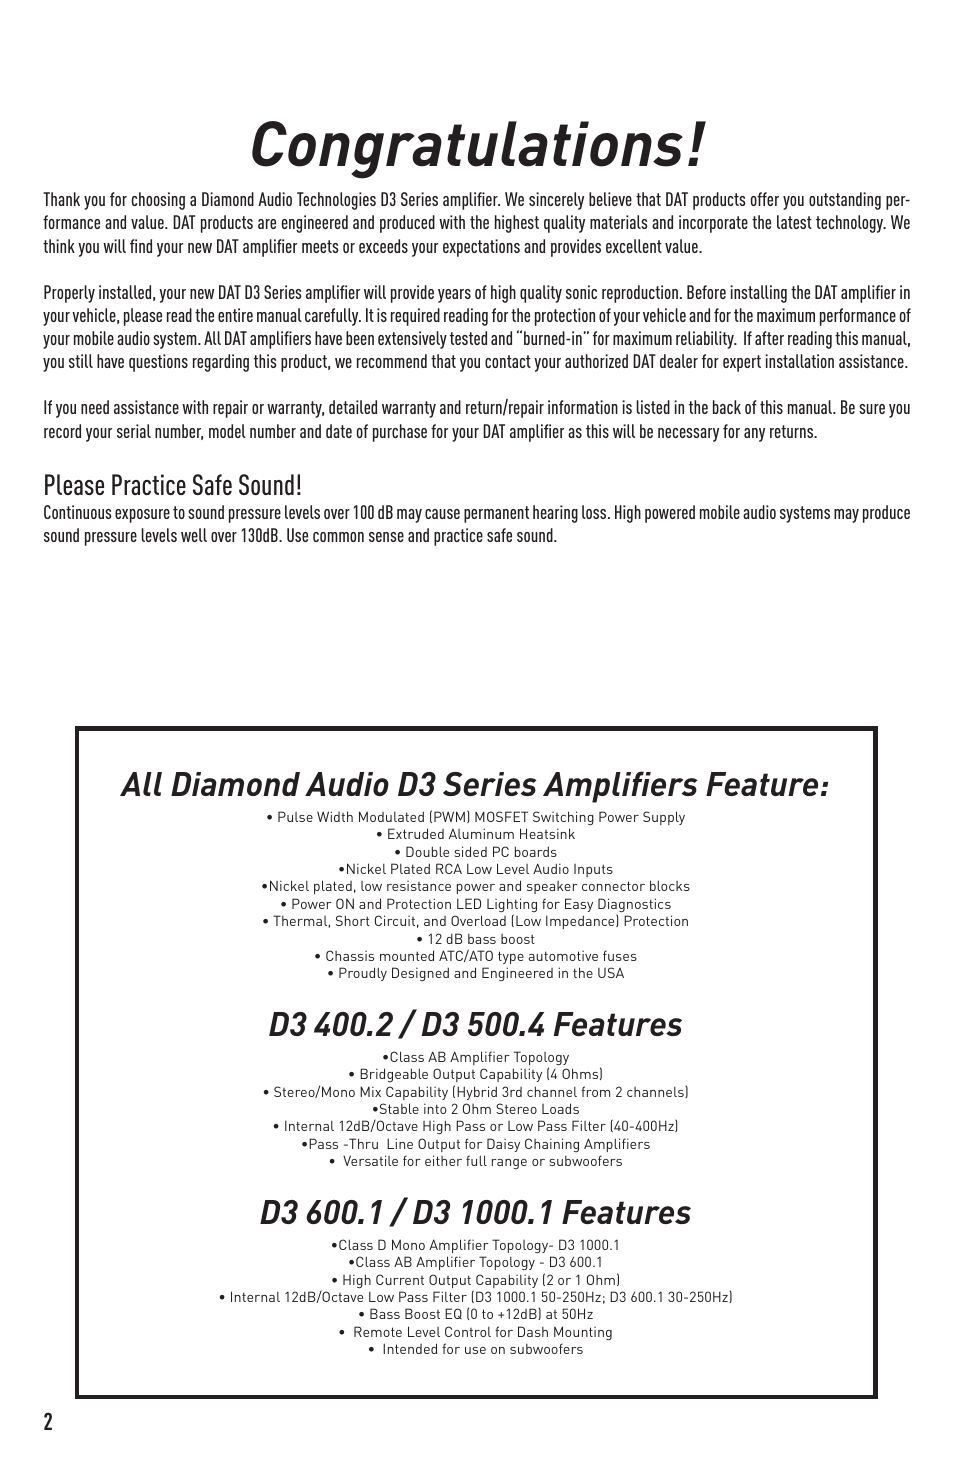 All diamond audio d3 series amplifiers feature, Please